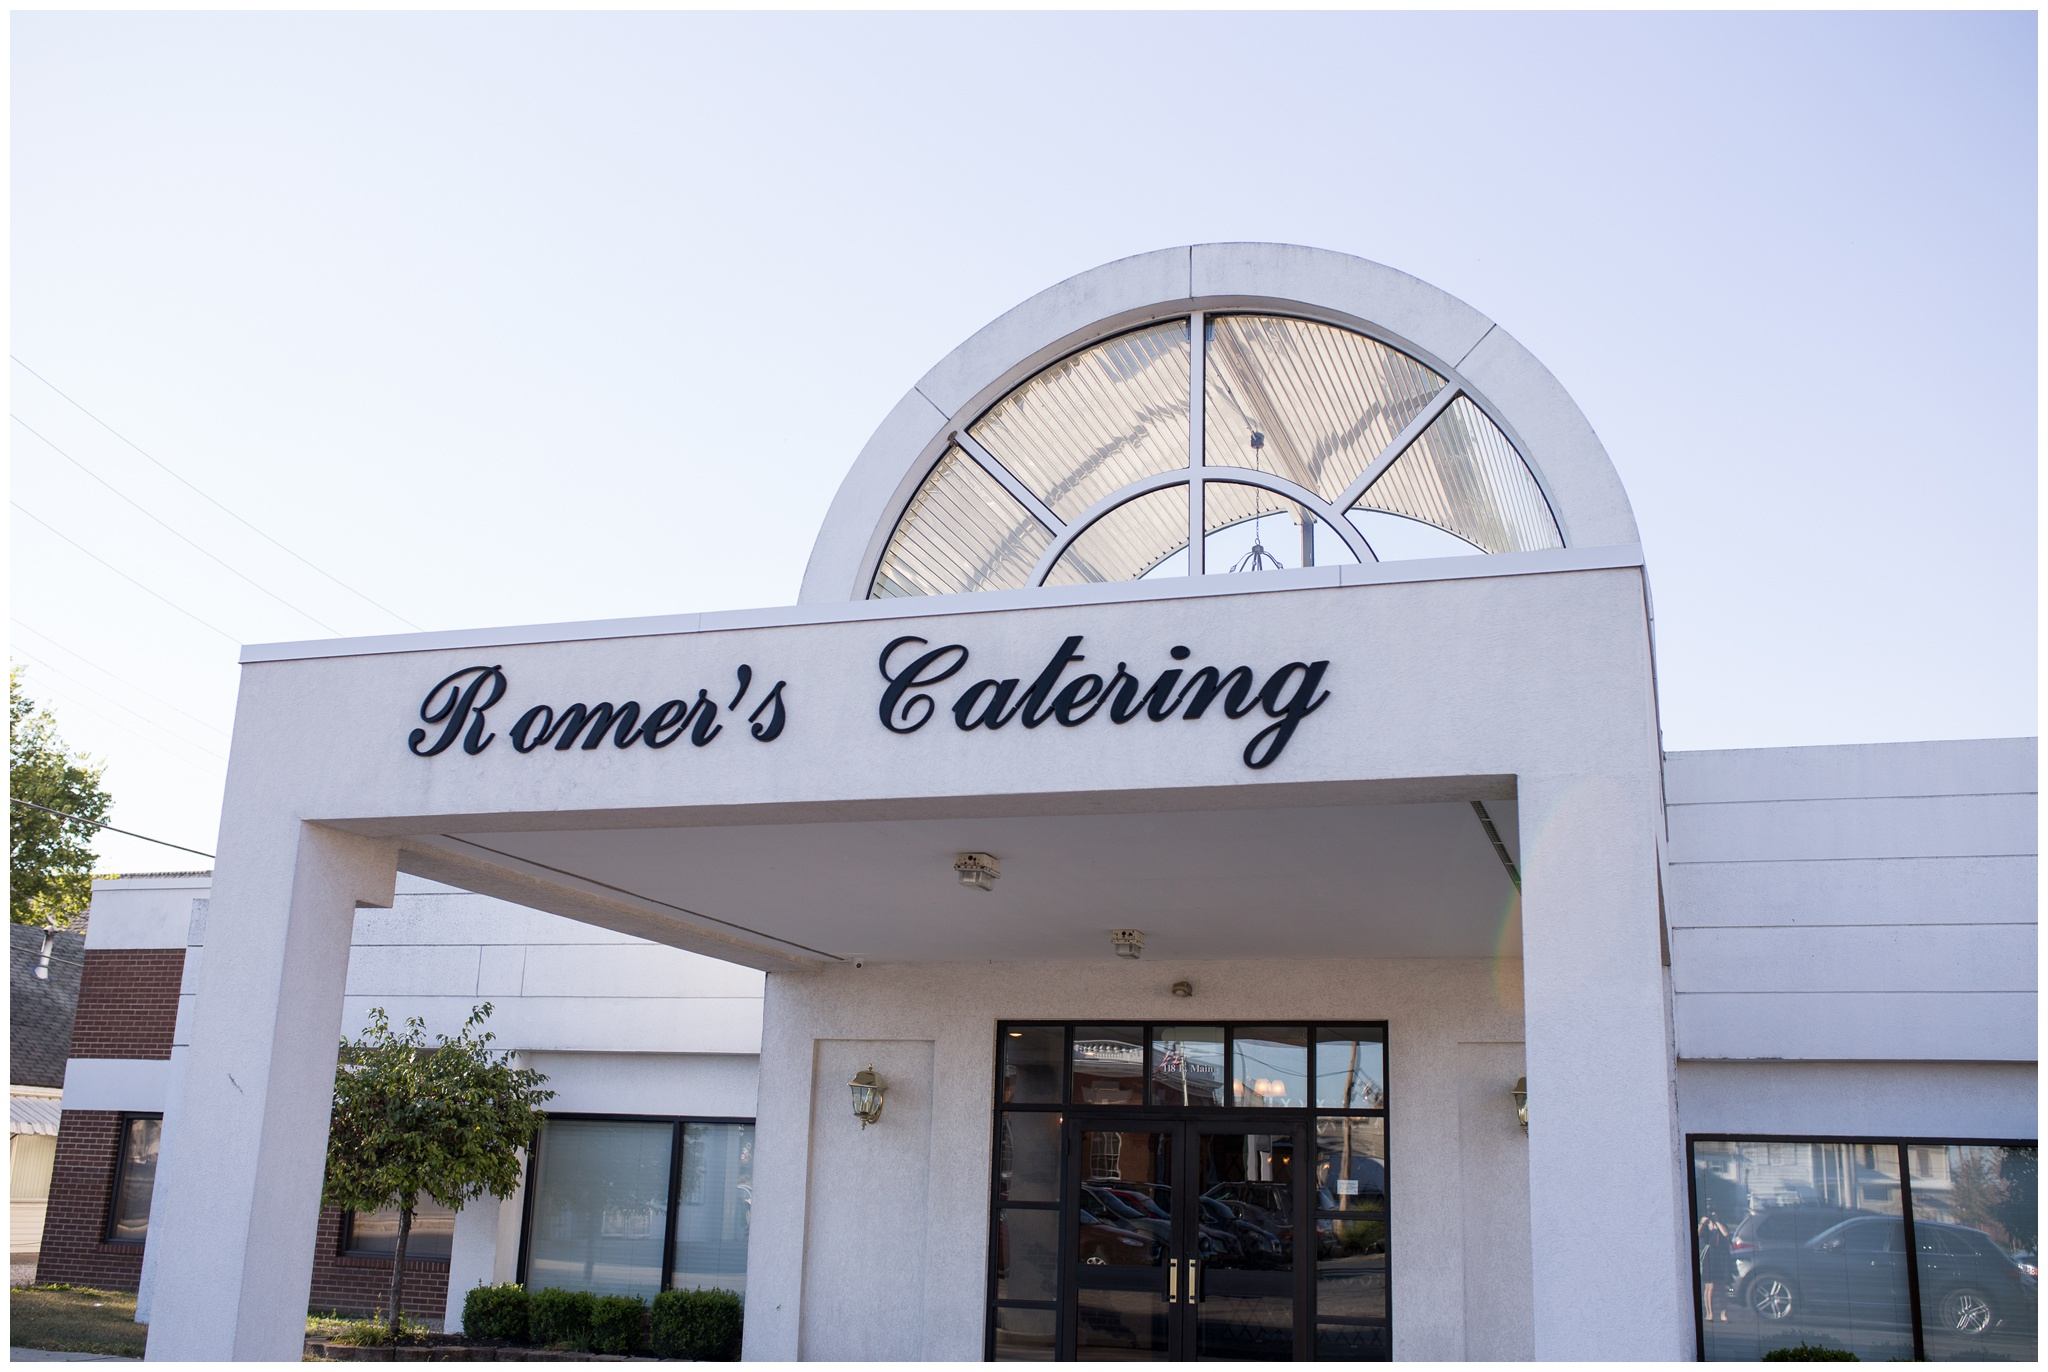 entrance to Romer's Catering in Greenville Ohio